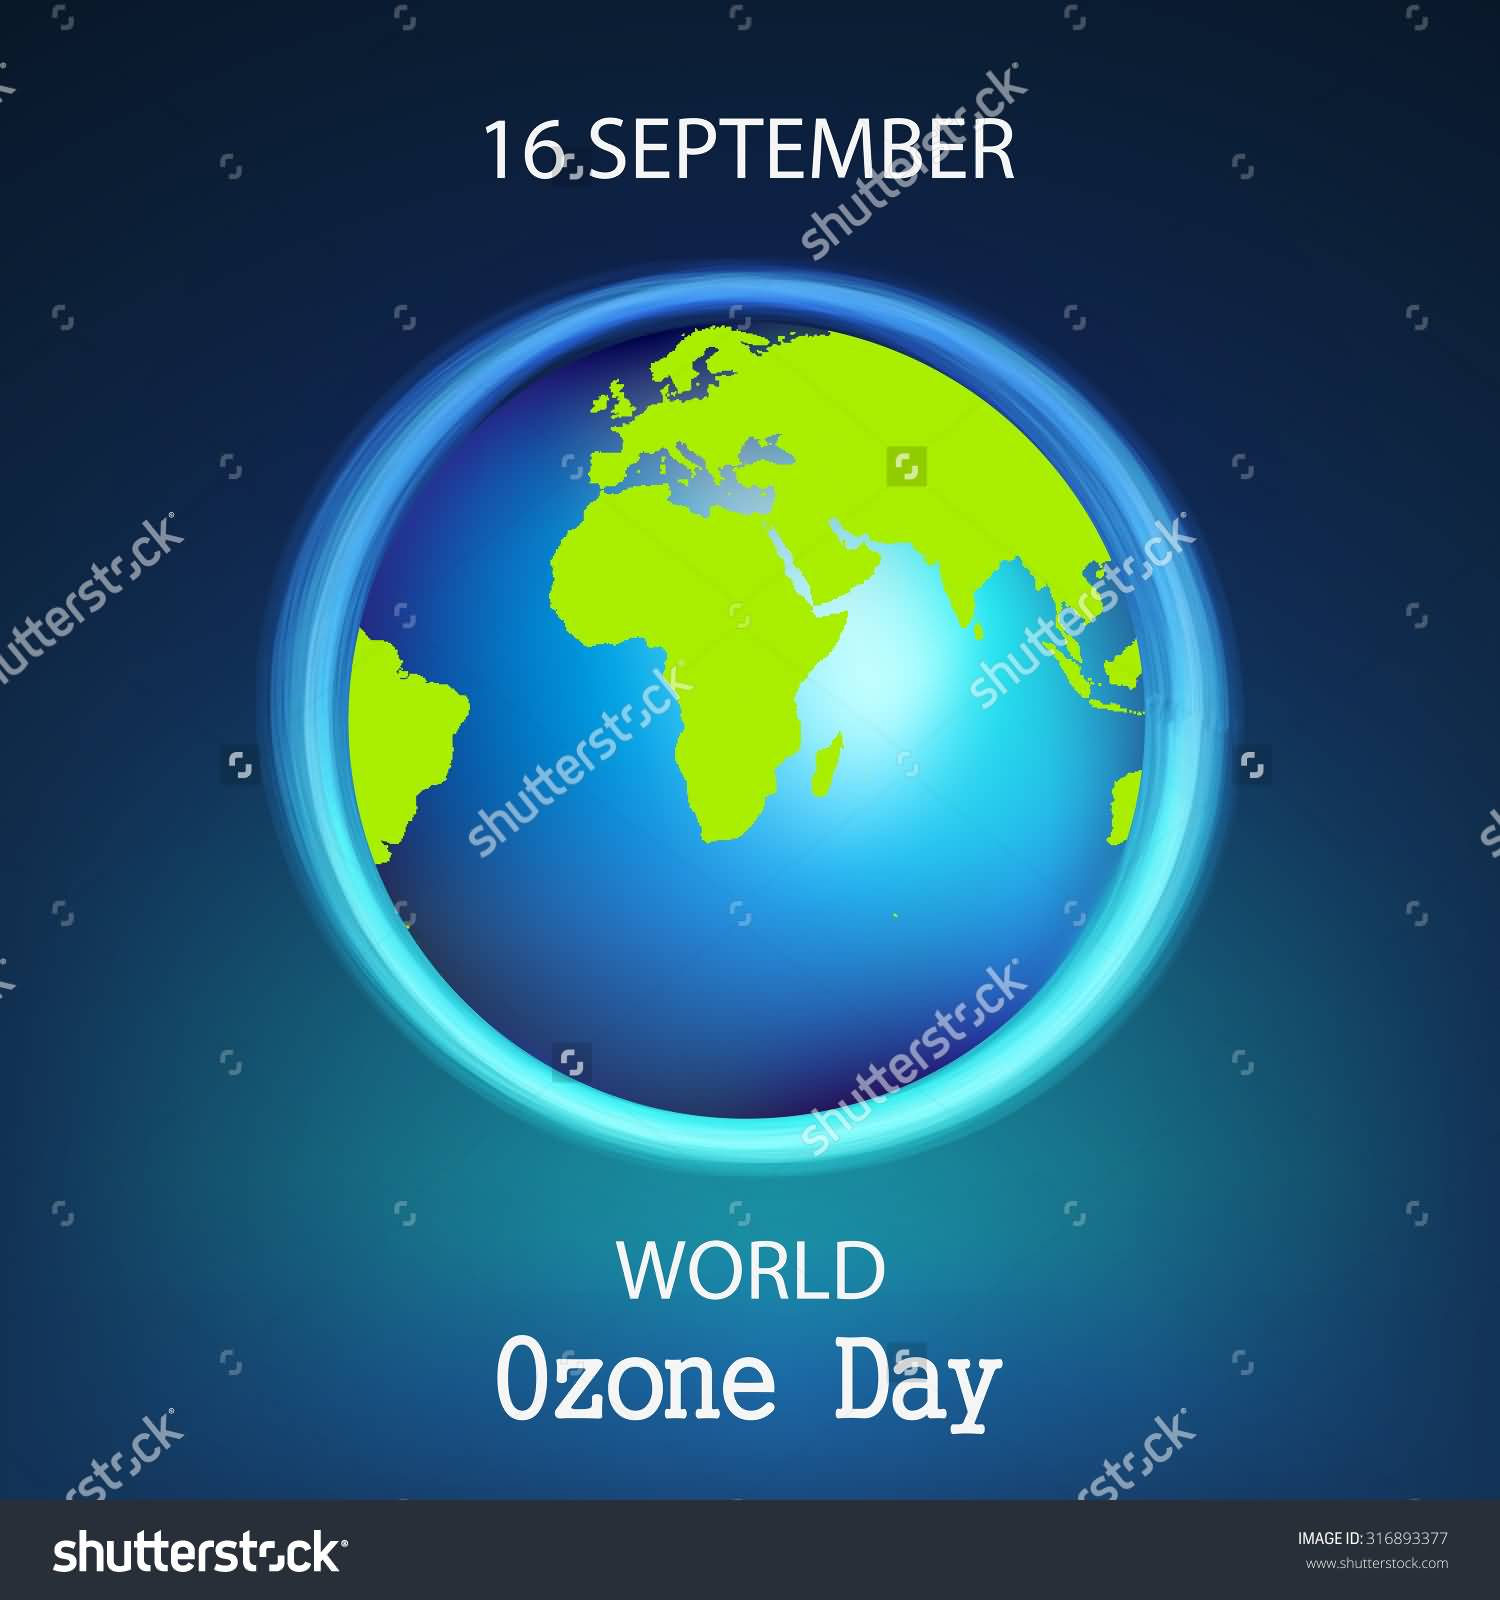 international ozone day On 16 september, the world celebrates the international day for the preservation  of the ozone layer and the benefits brought about by the montreal protocol 24.